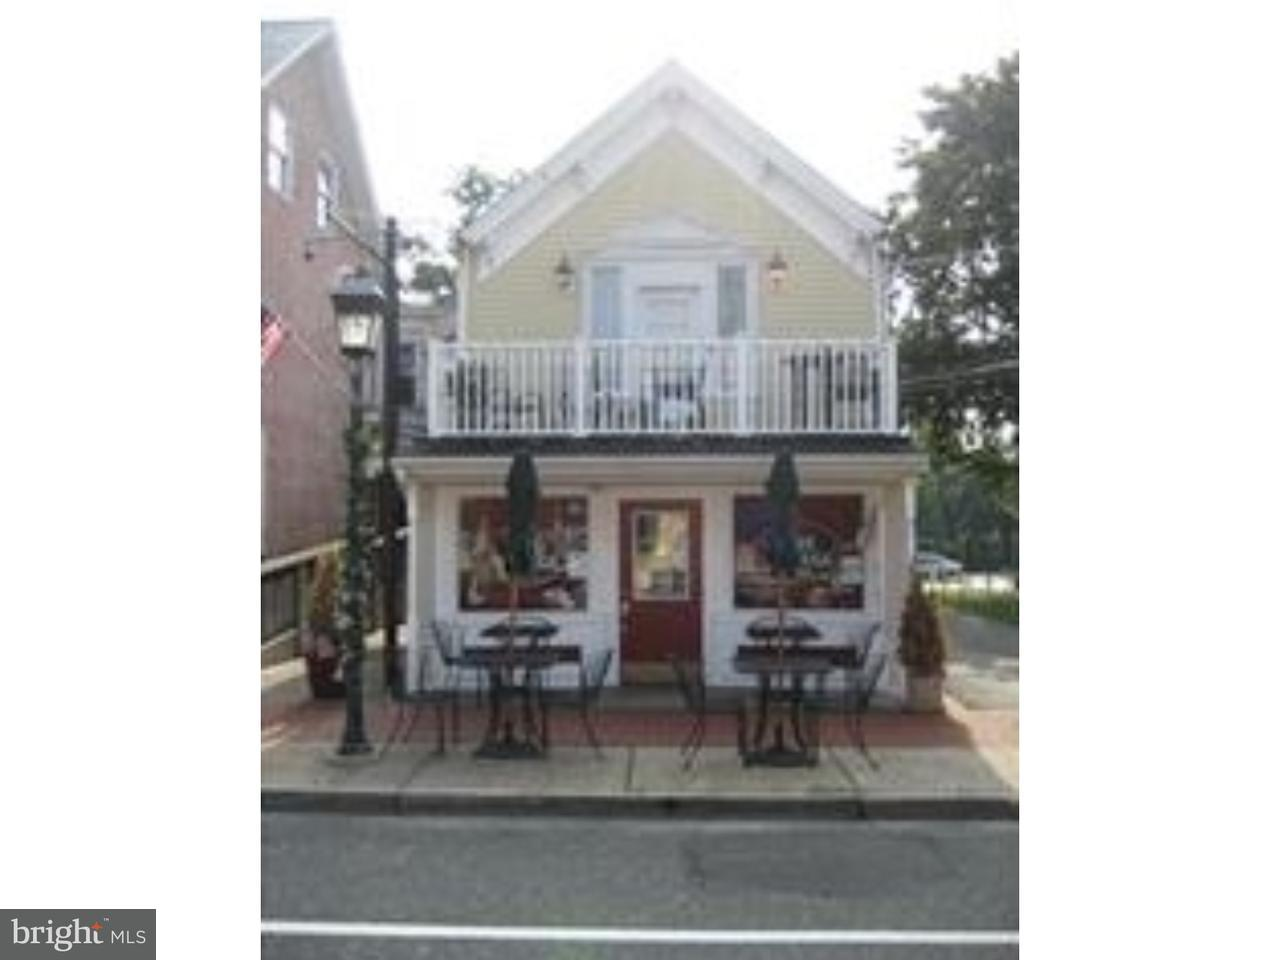 Duplex for Rent at 11 S MAIN ST #A Medford, New Jersey 08055 United States